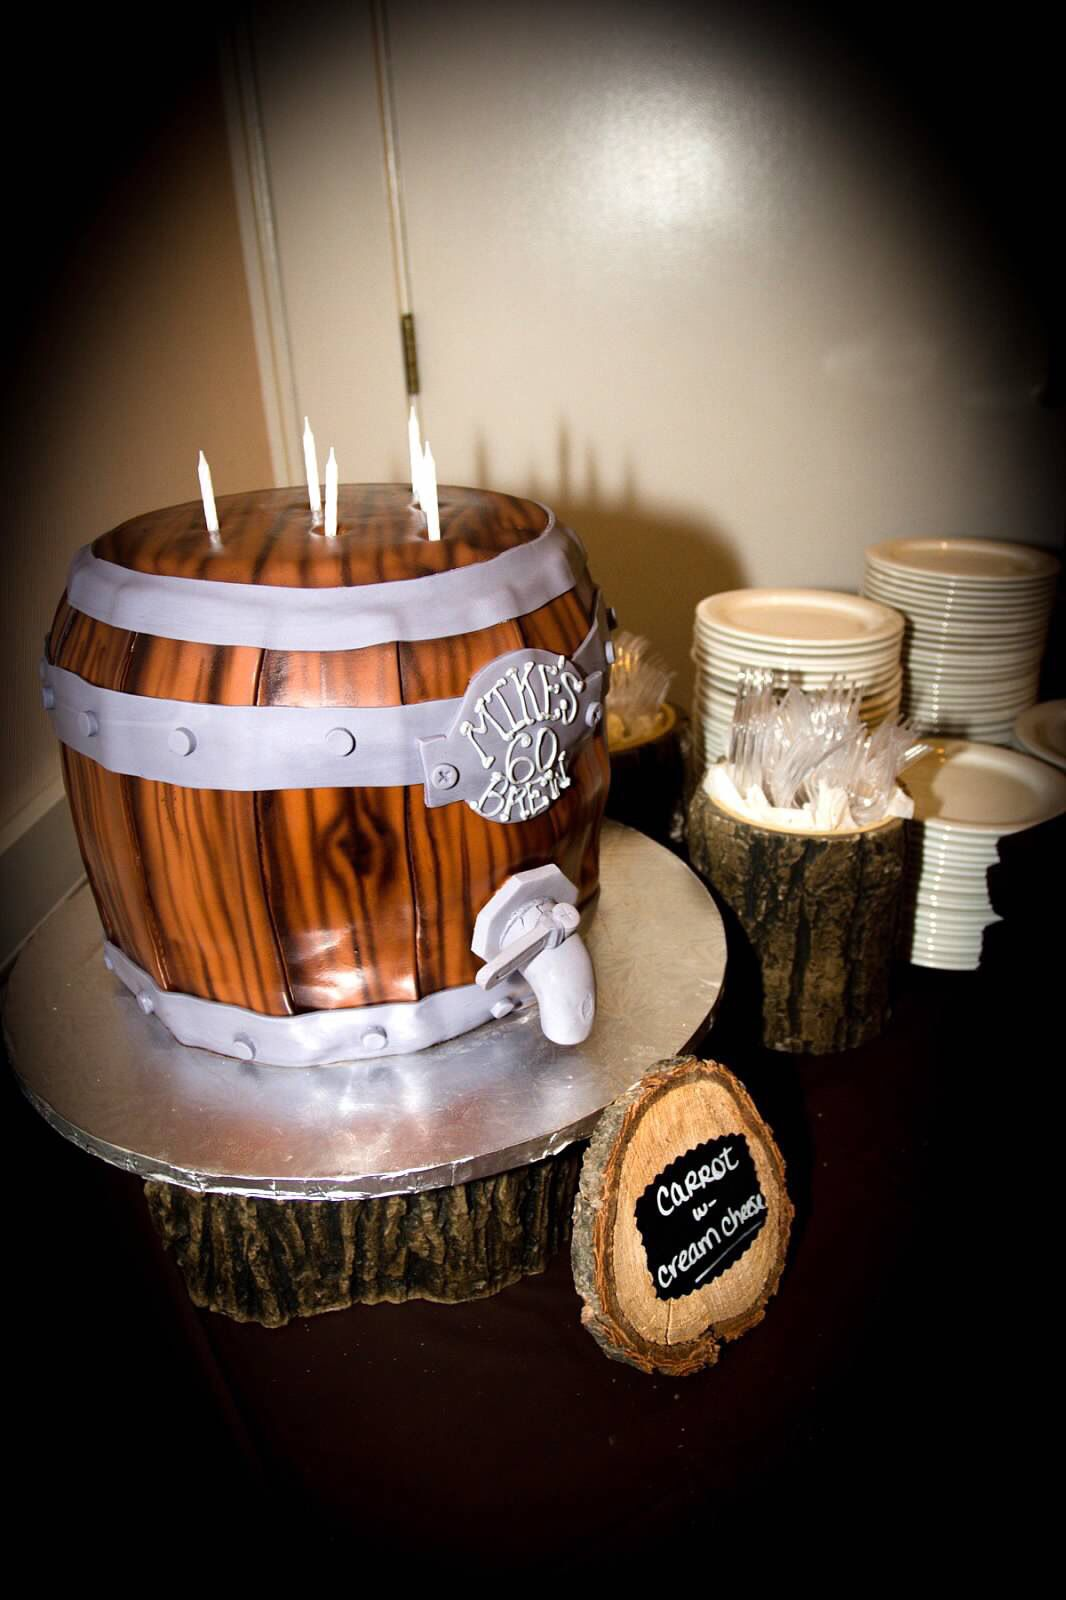 Beer barrel cake. Rustic 60th birthday party: Posh n' Chic Prints was the event planner